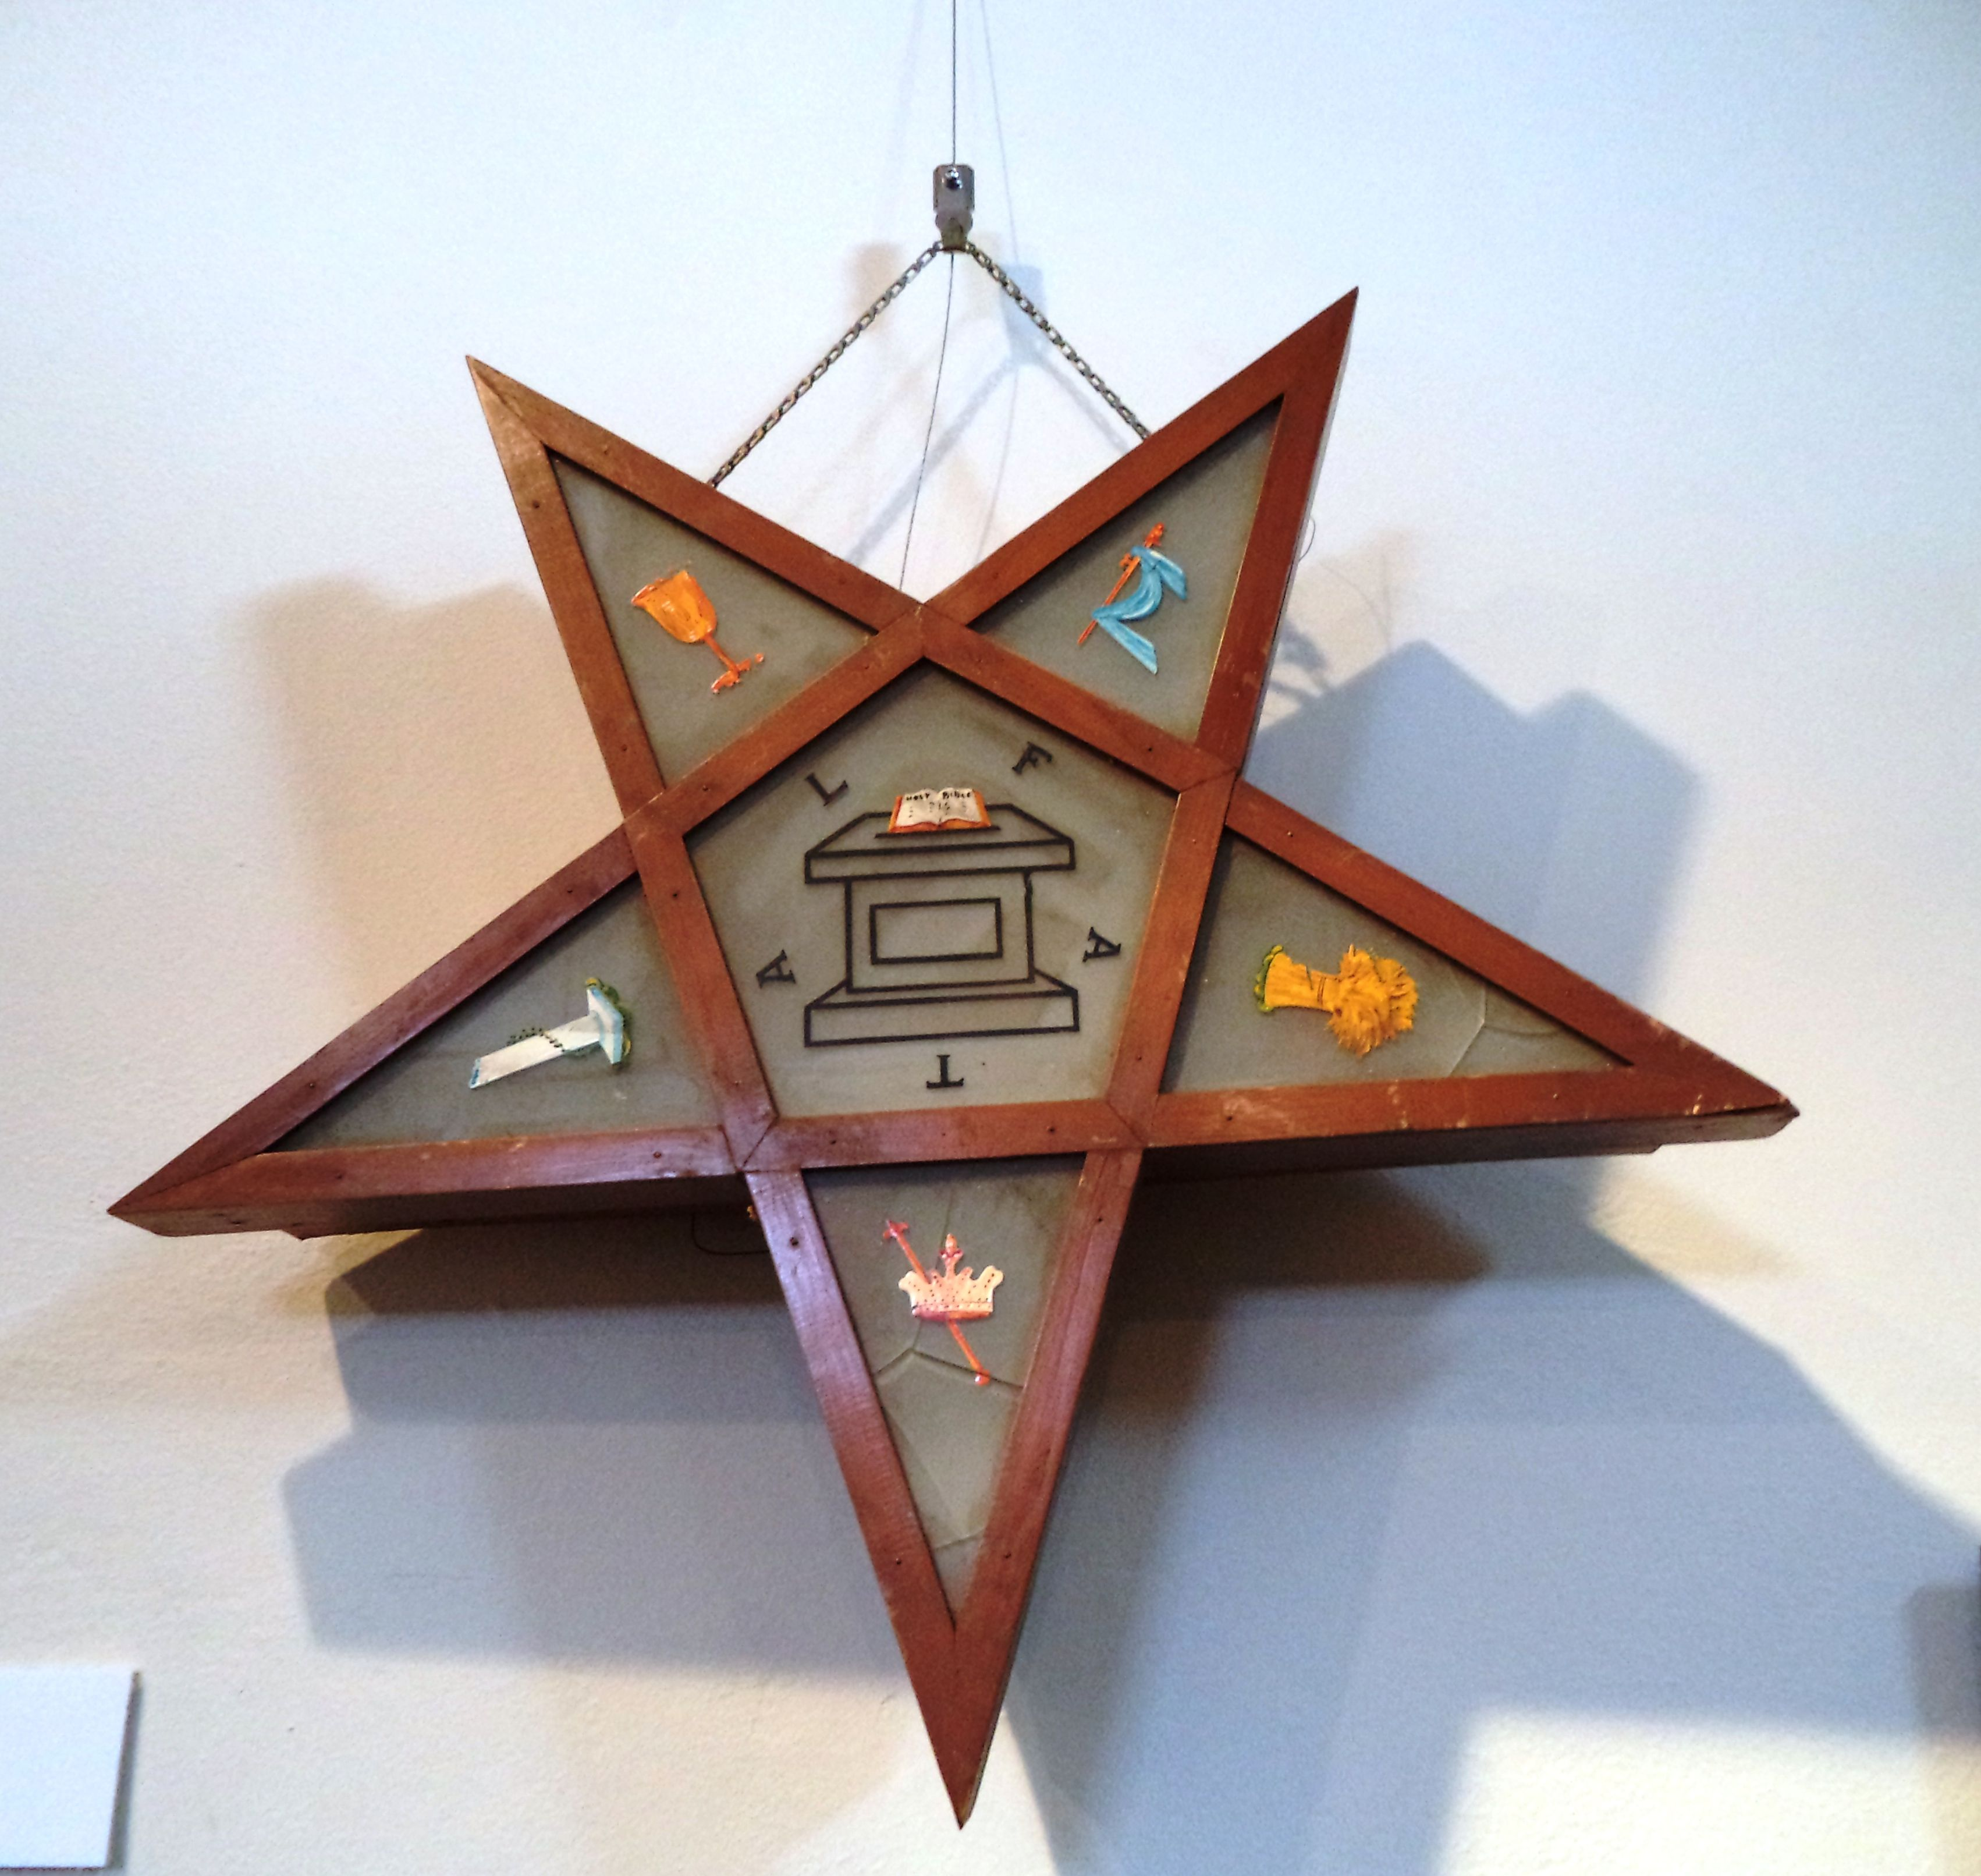 Order of the Eastern Star - Wikipedia